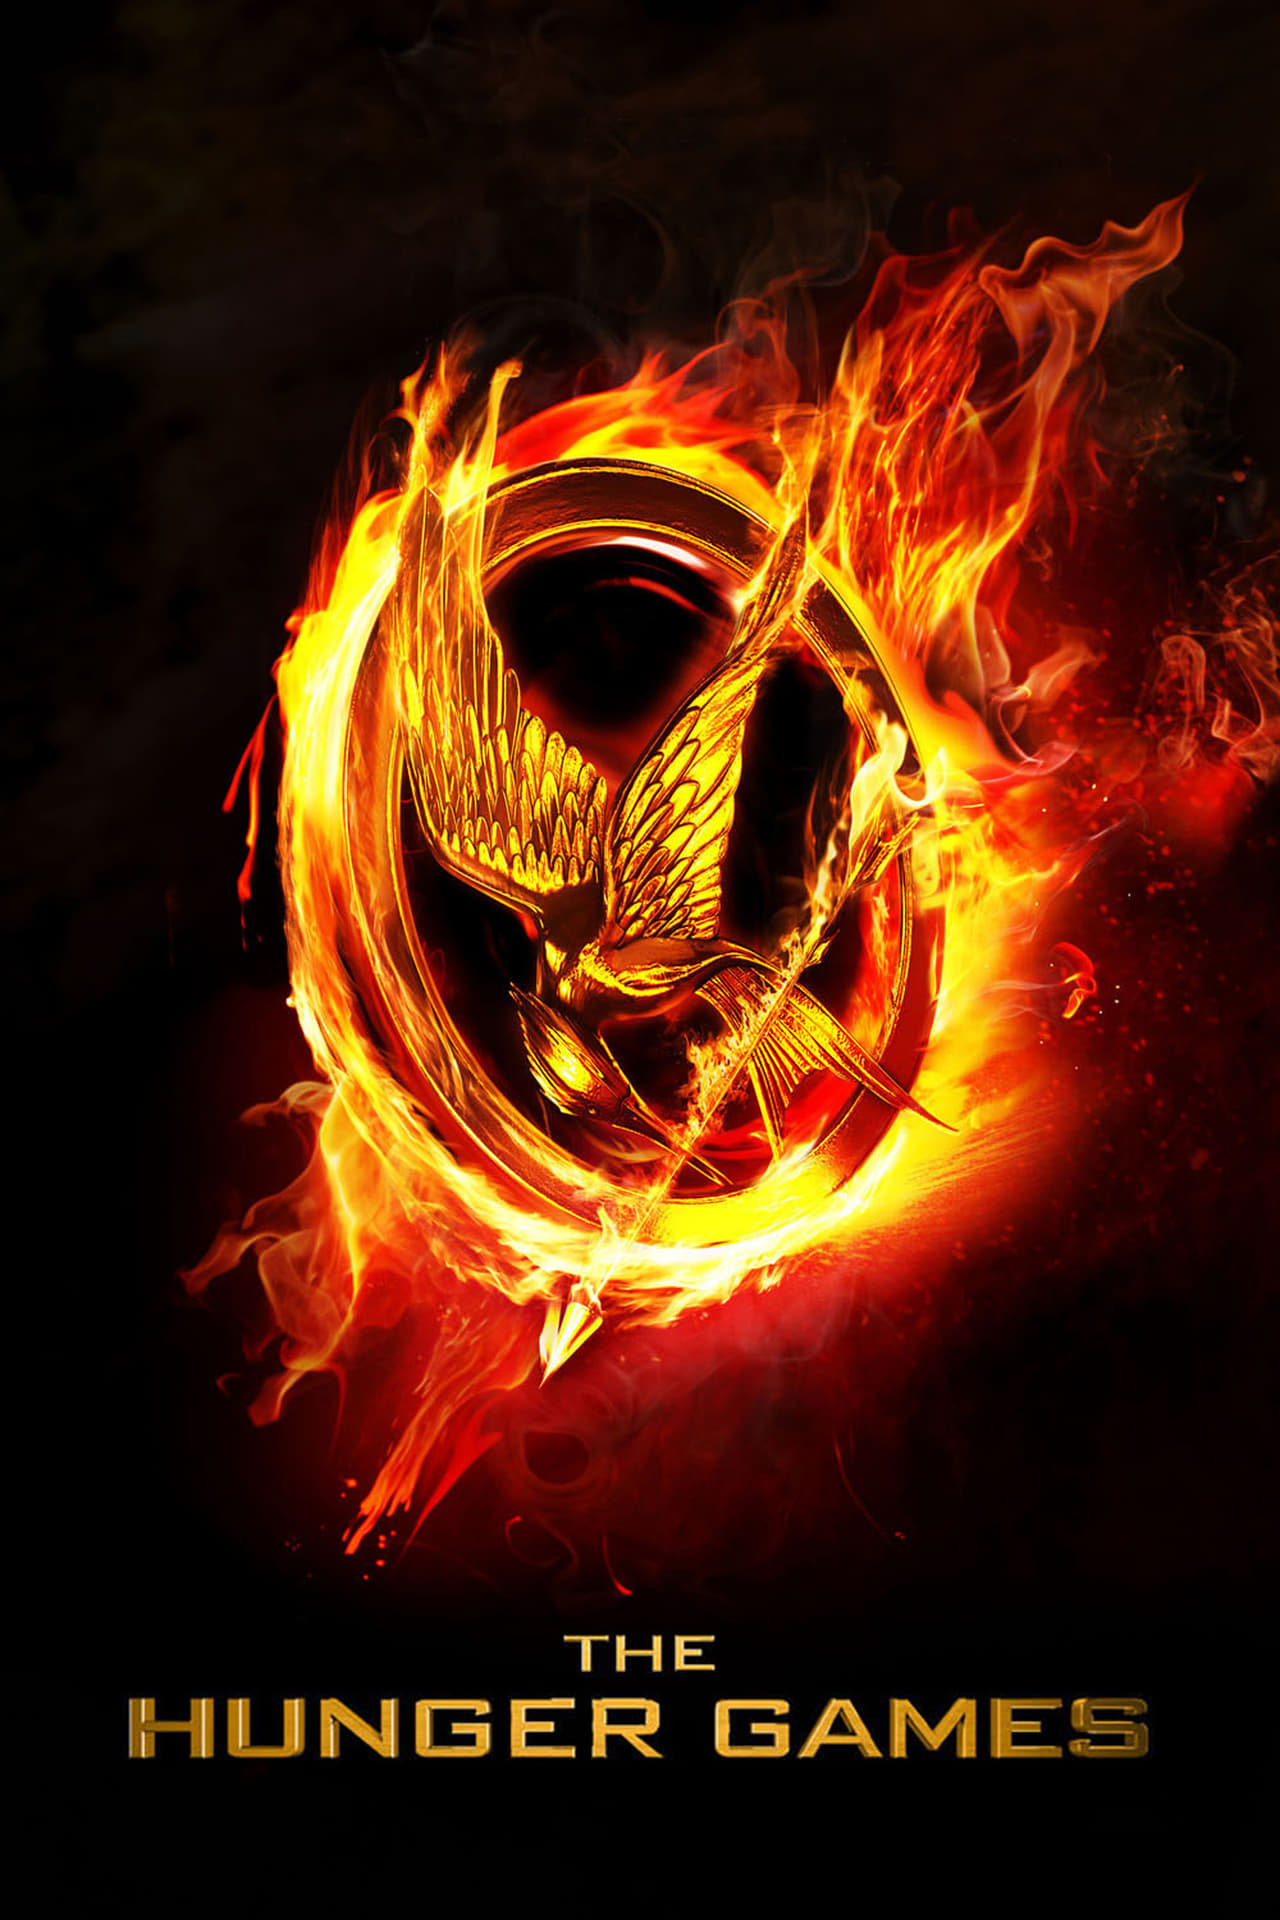 enlgish hunger games The hunger games study guide contains a biography of suzanne collins, literature essays, quiz questions, major themes, characters, and a full summary and analysis.